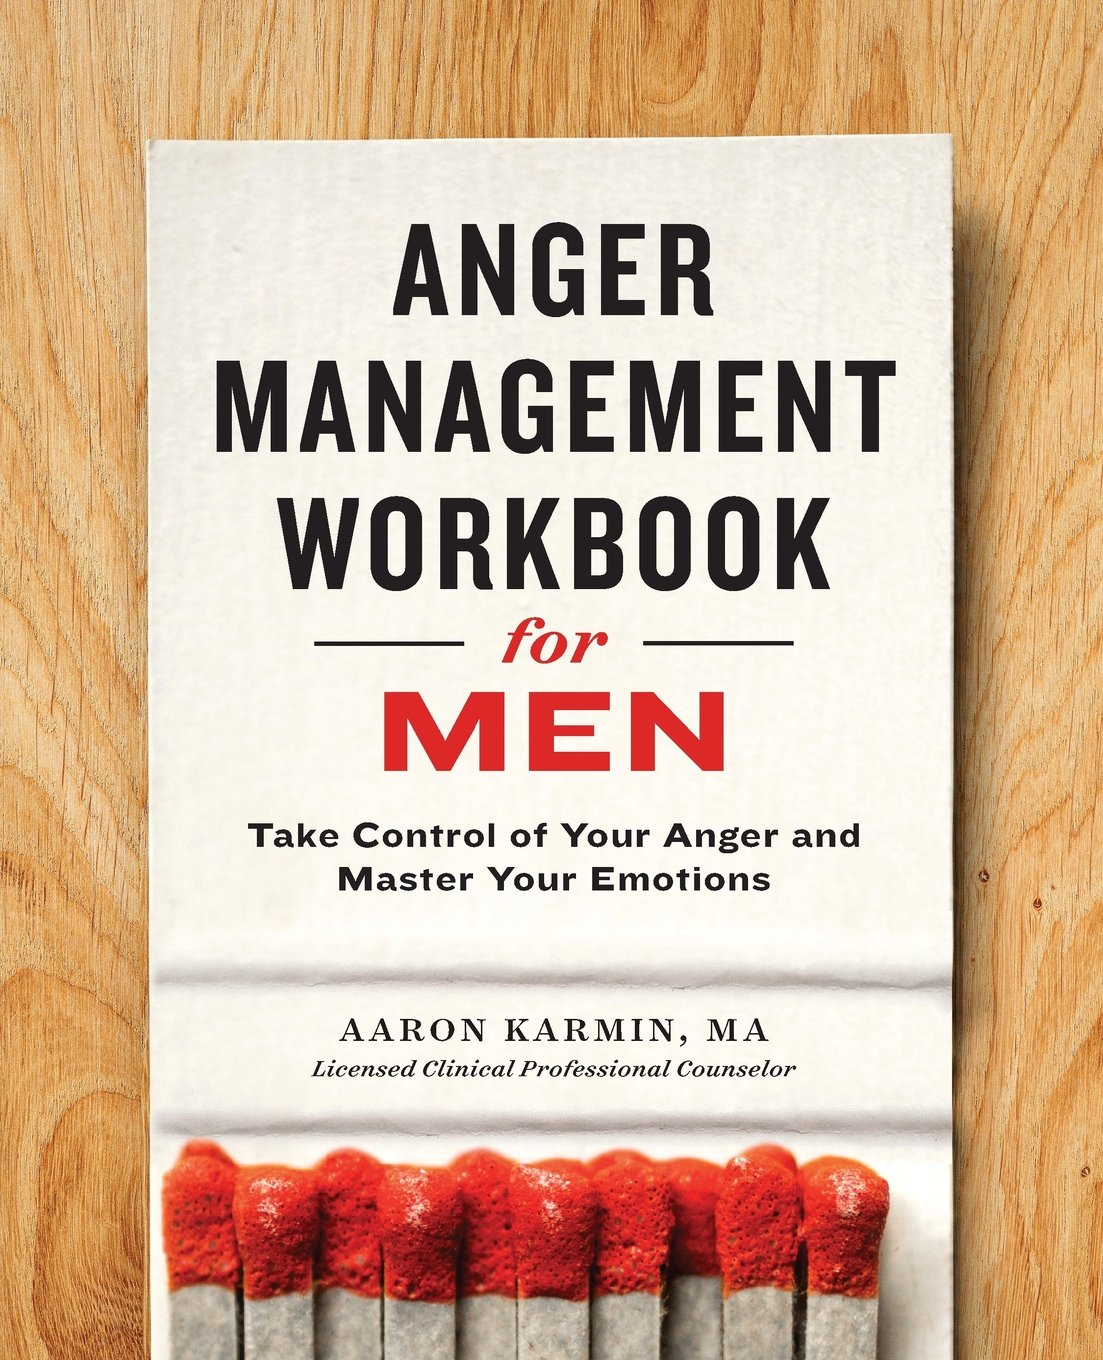 Amazon.com: Anger Management Workbook for Men: Take Control of Your ...